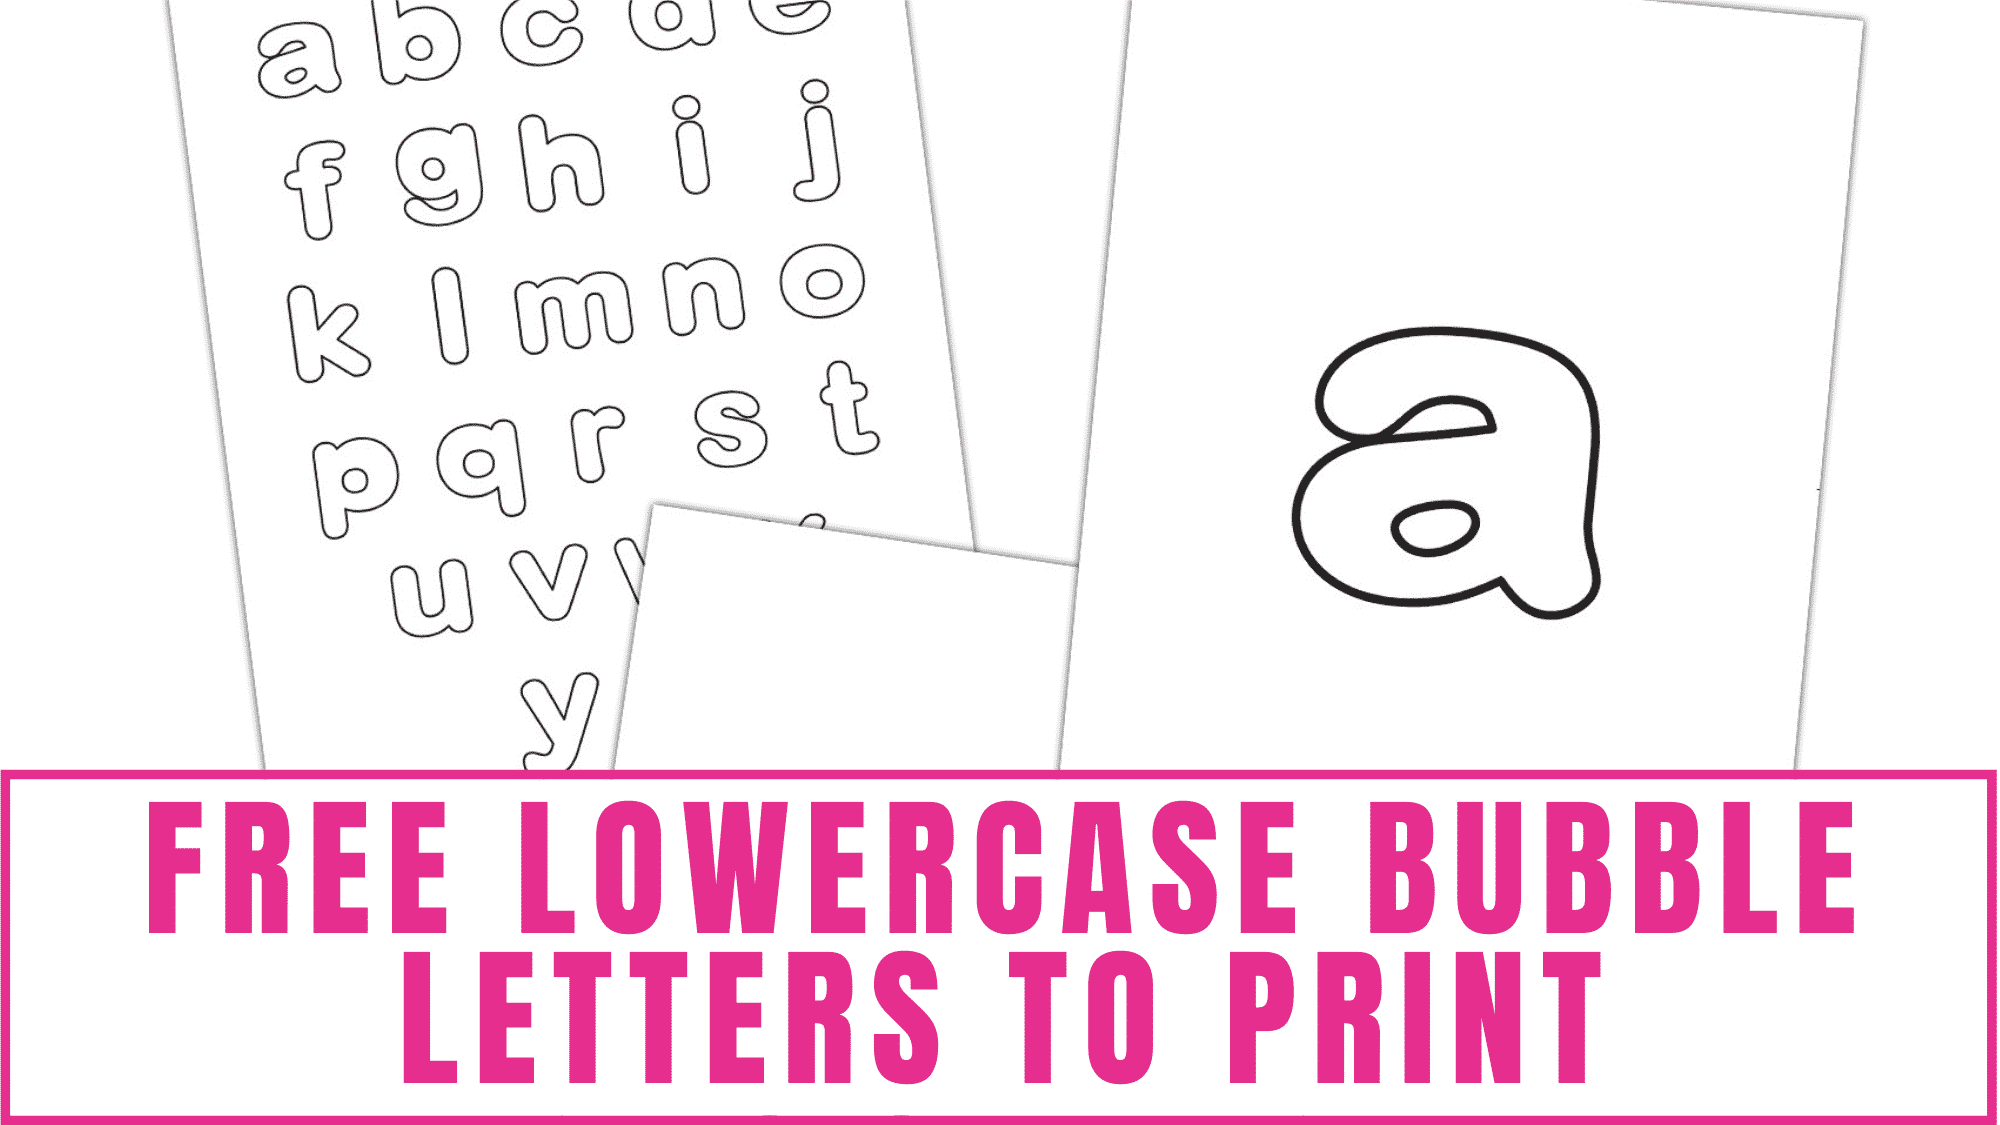 Is your kid having difficulty learning their lowercase letters? Download these free lowercase bubble letters to print and use them for fun educational activities. You can make games, coloring pages, crafts, tracing worksheets and more out of these free printable letters.